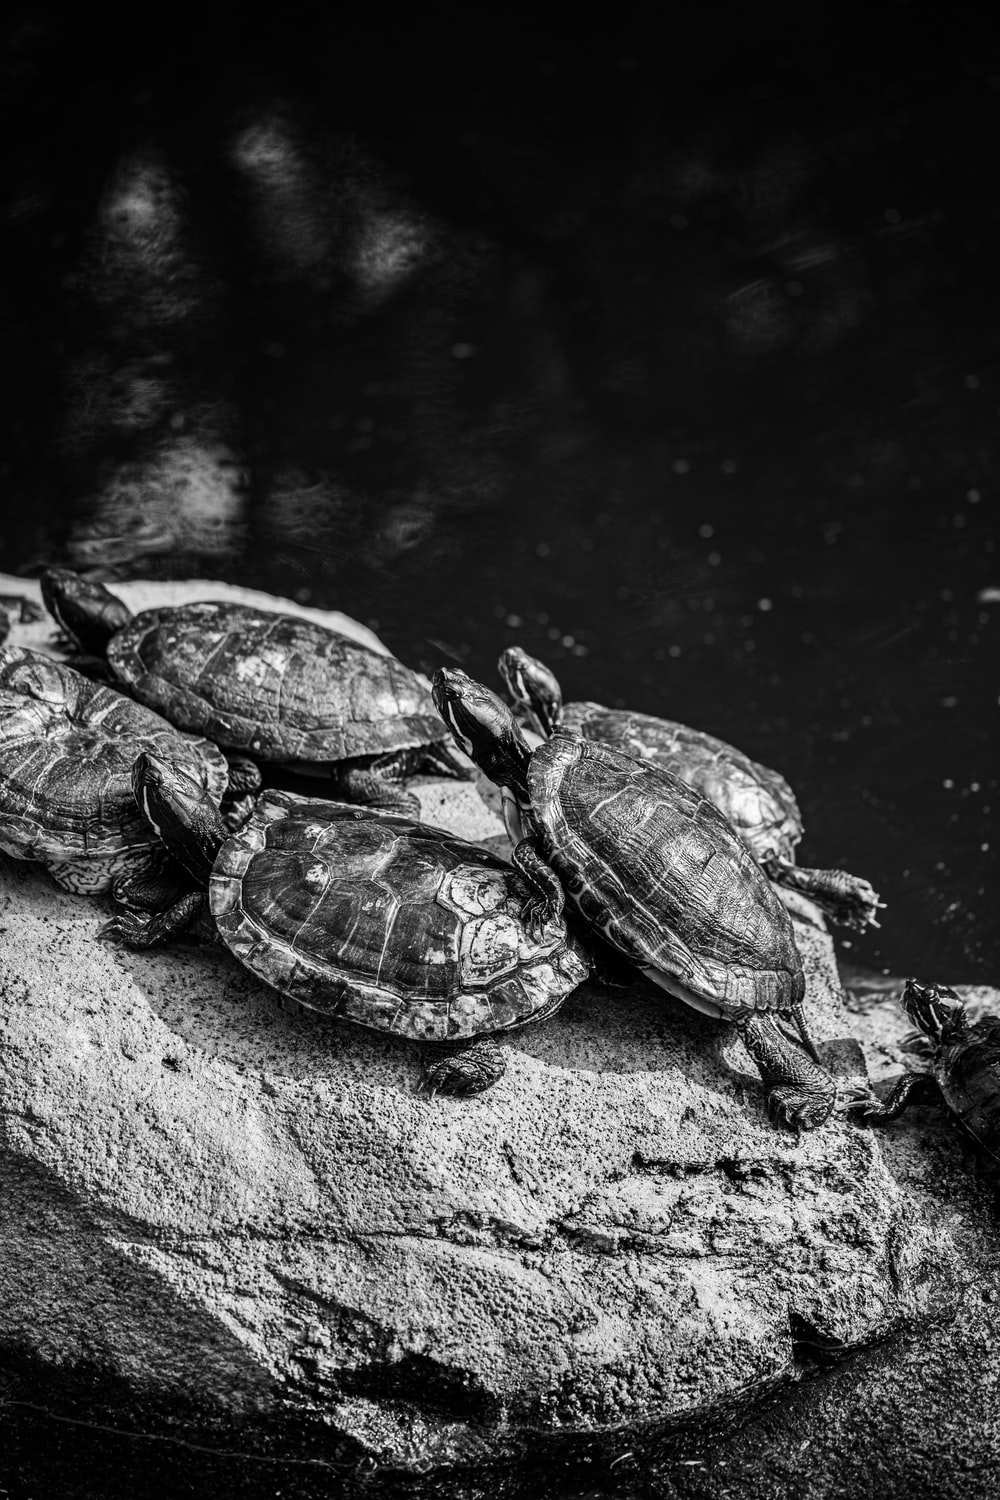 turtle on water in grayscale photography